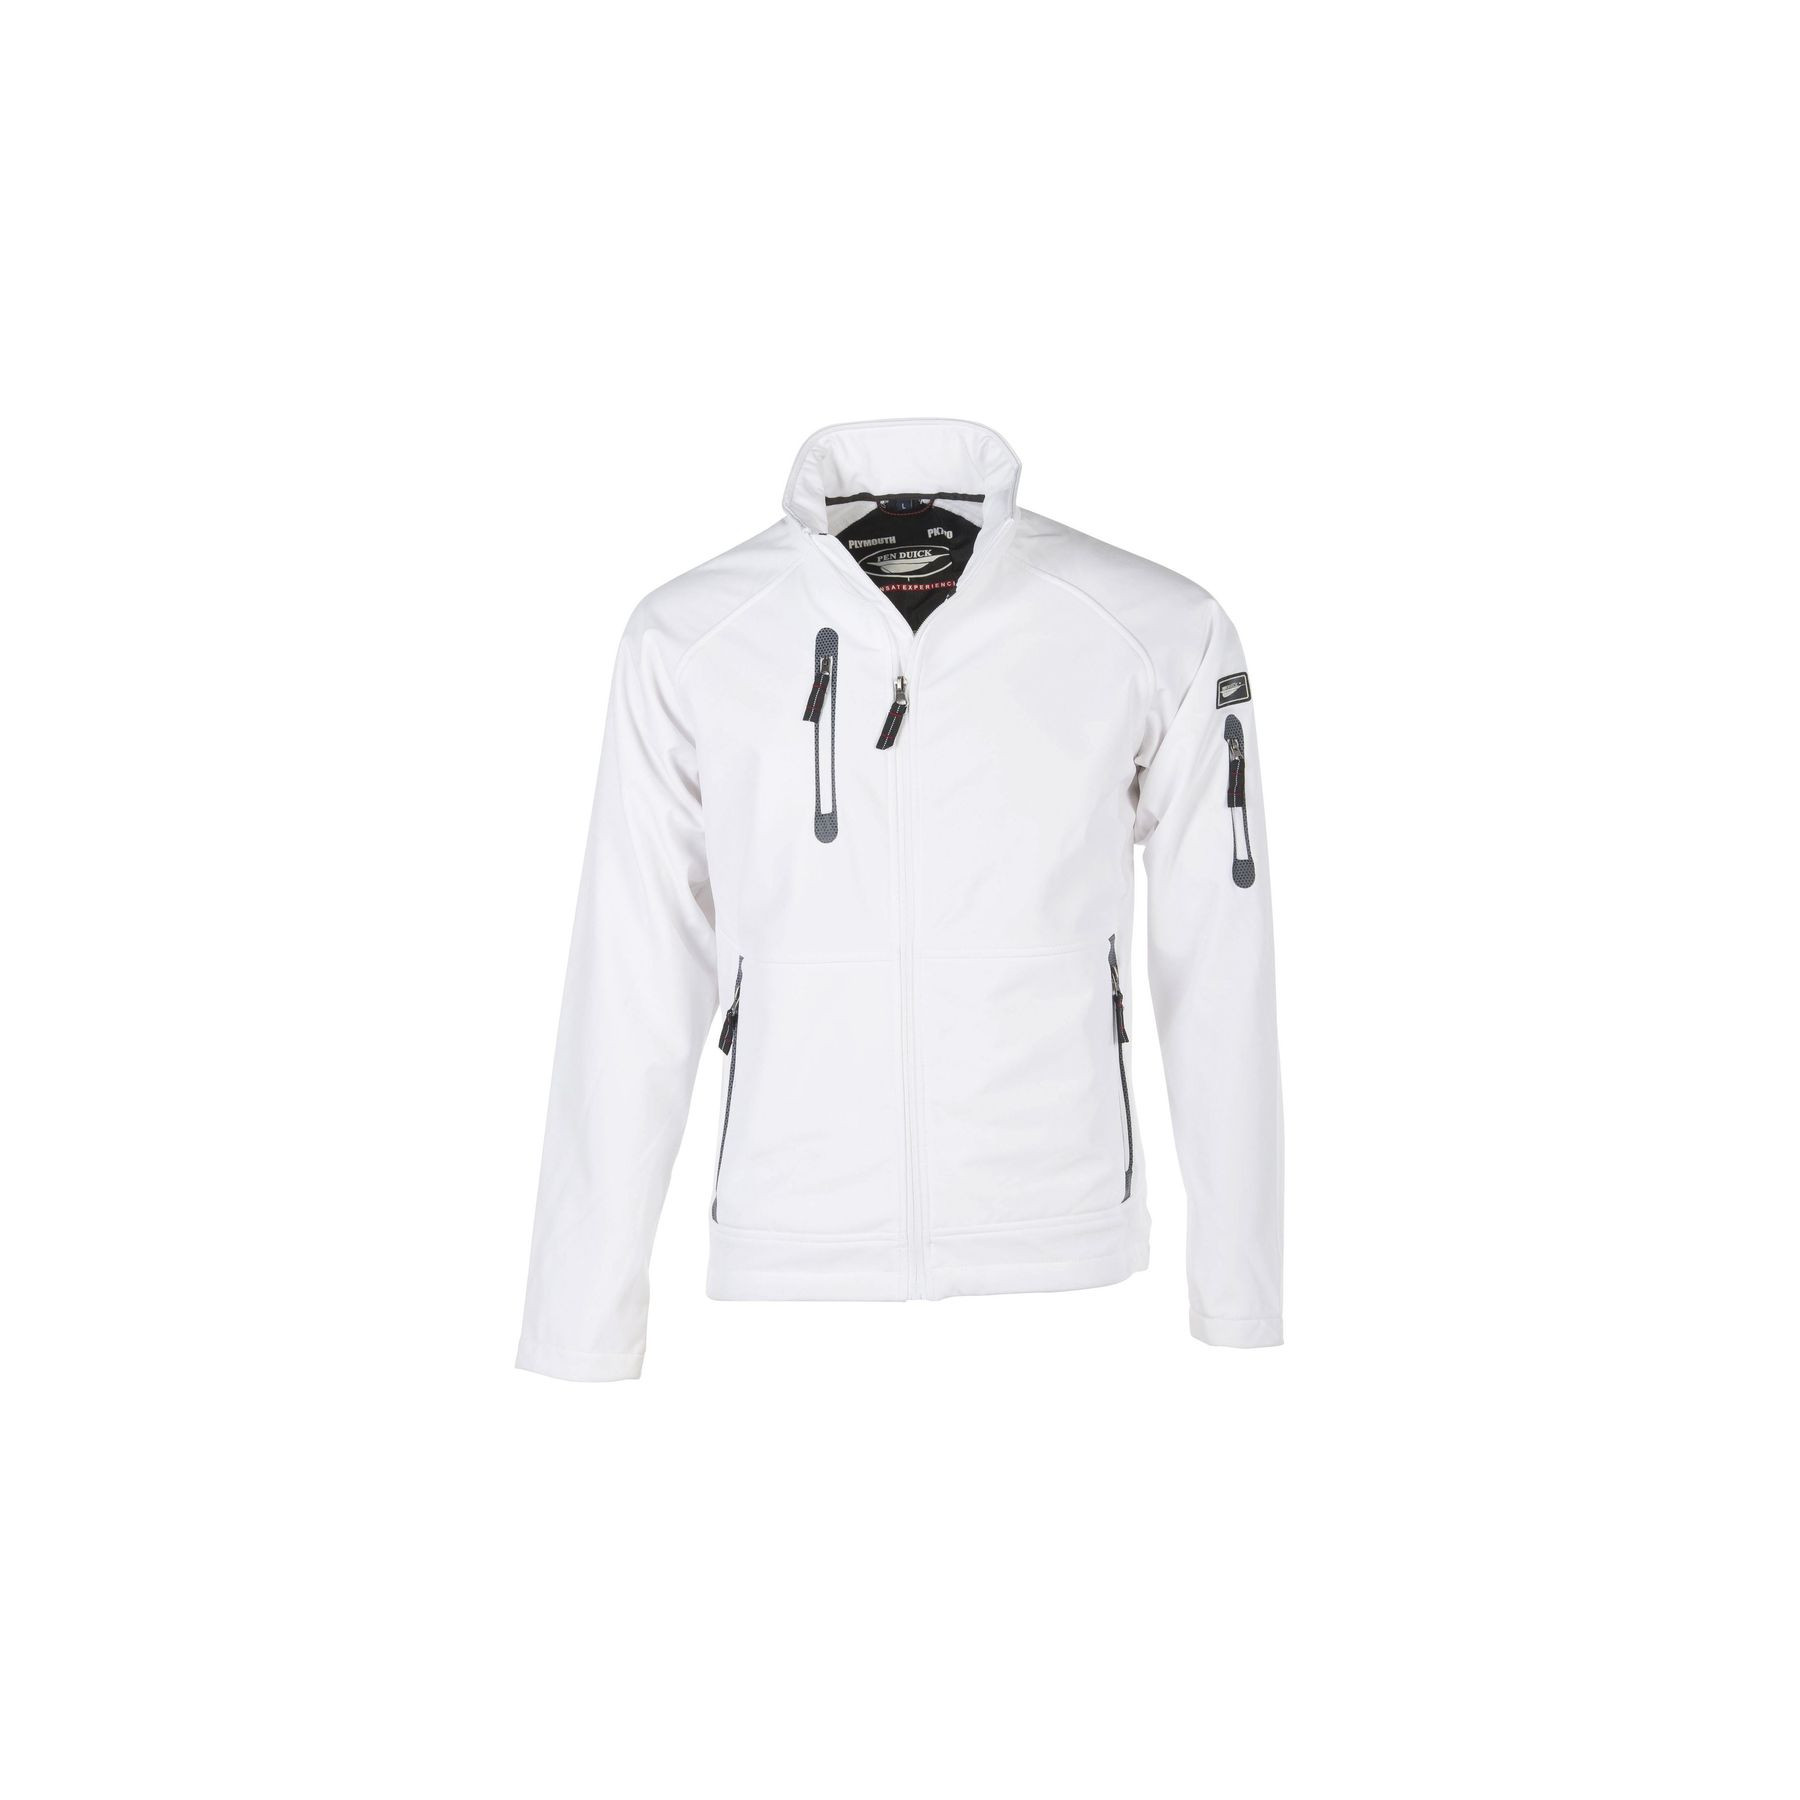 Veste softshell Plymouth Pen Duick - Blanc